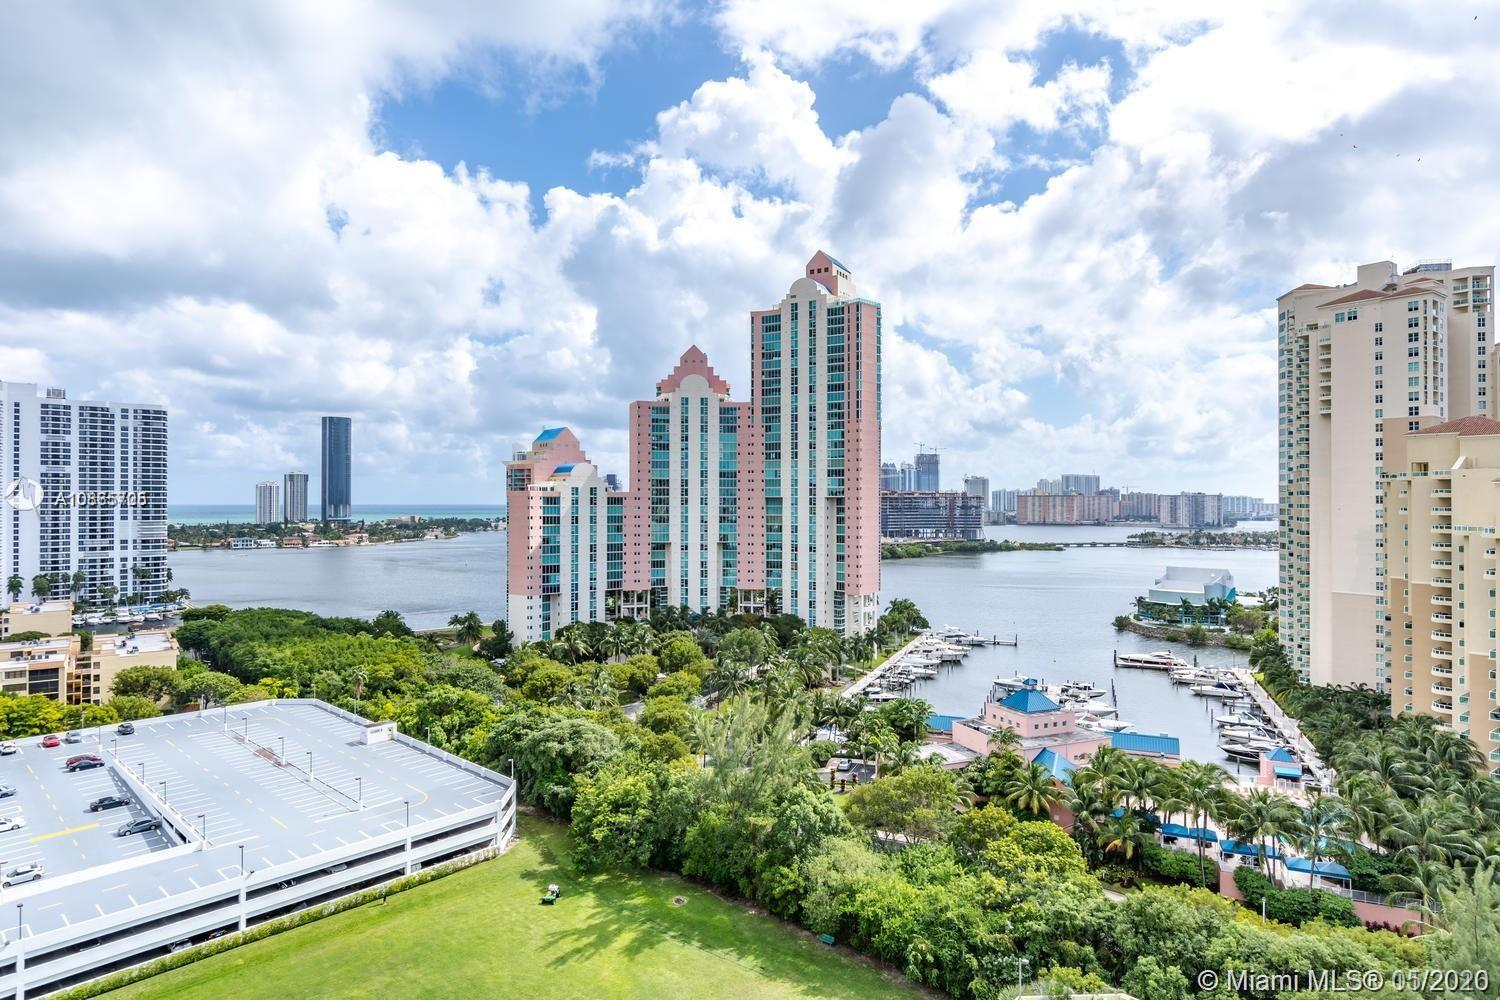 LARGEST 2 BEDROOM WITH DEN CORNER UNIT BOASTS 1300+ SQUARE FEET WITH 3 BALCONIES! BEAUTIFUL VIEWS OF